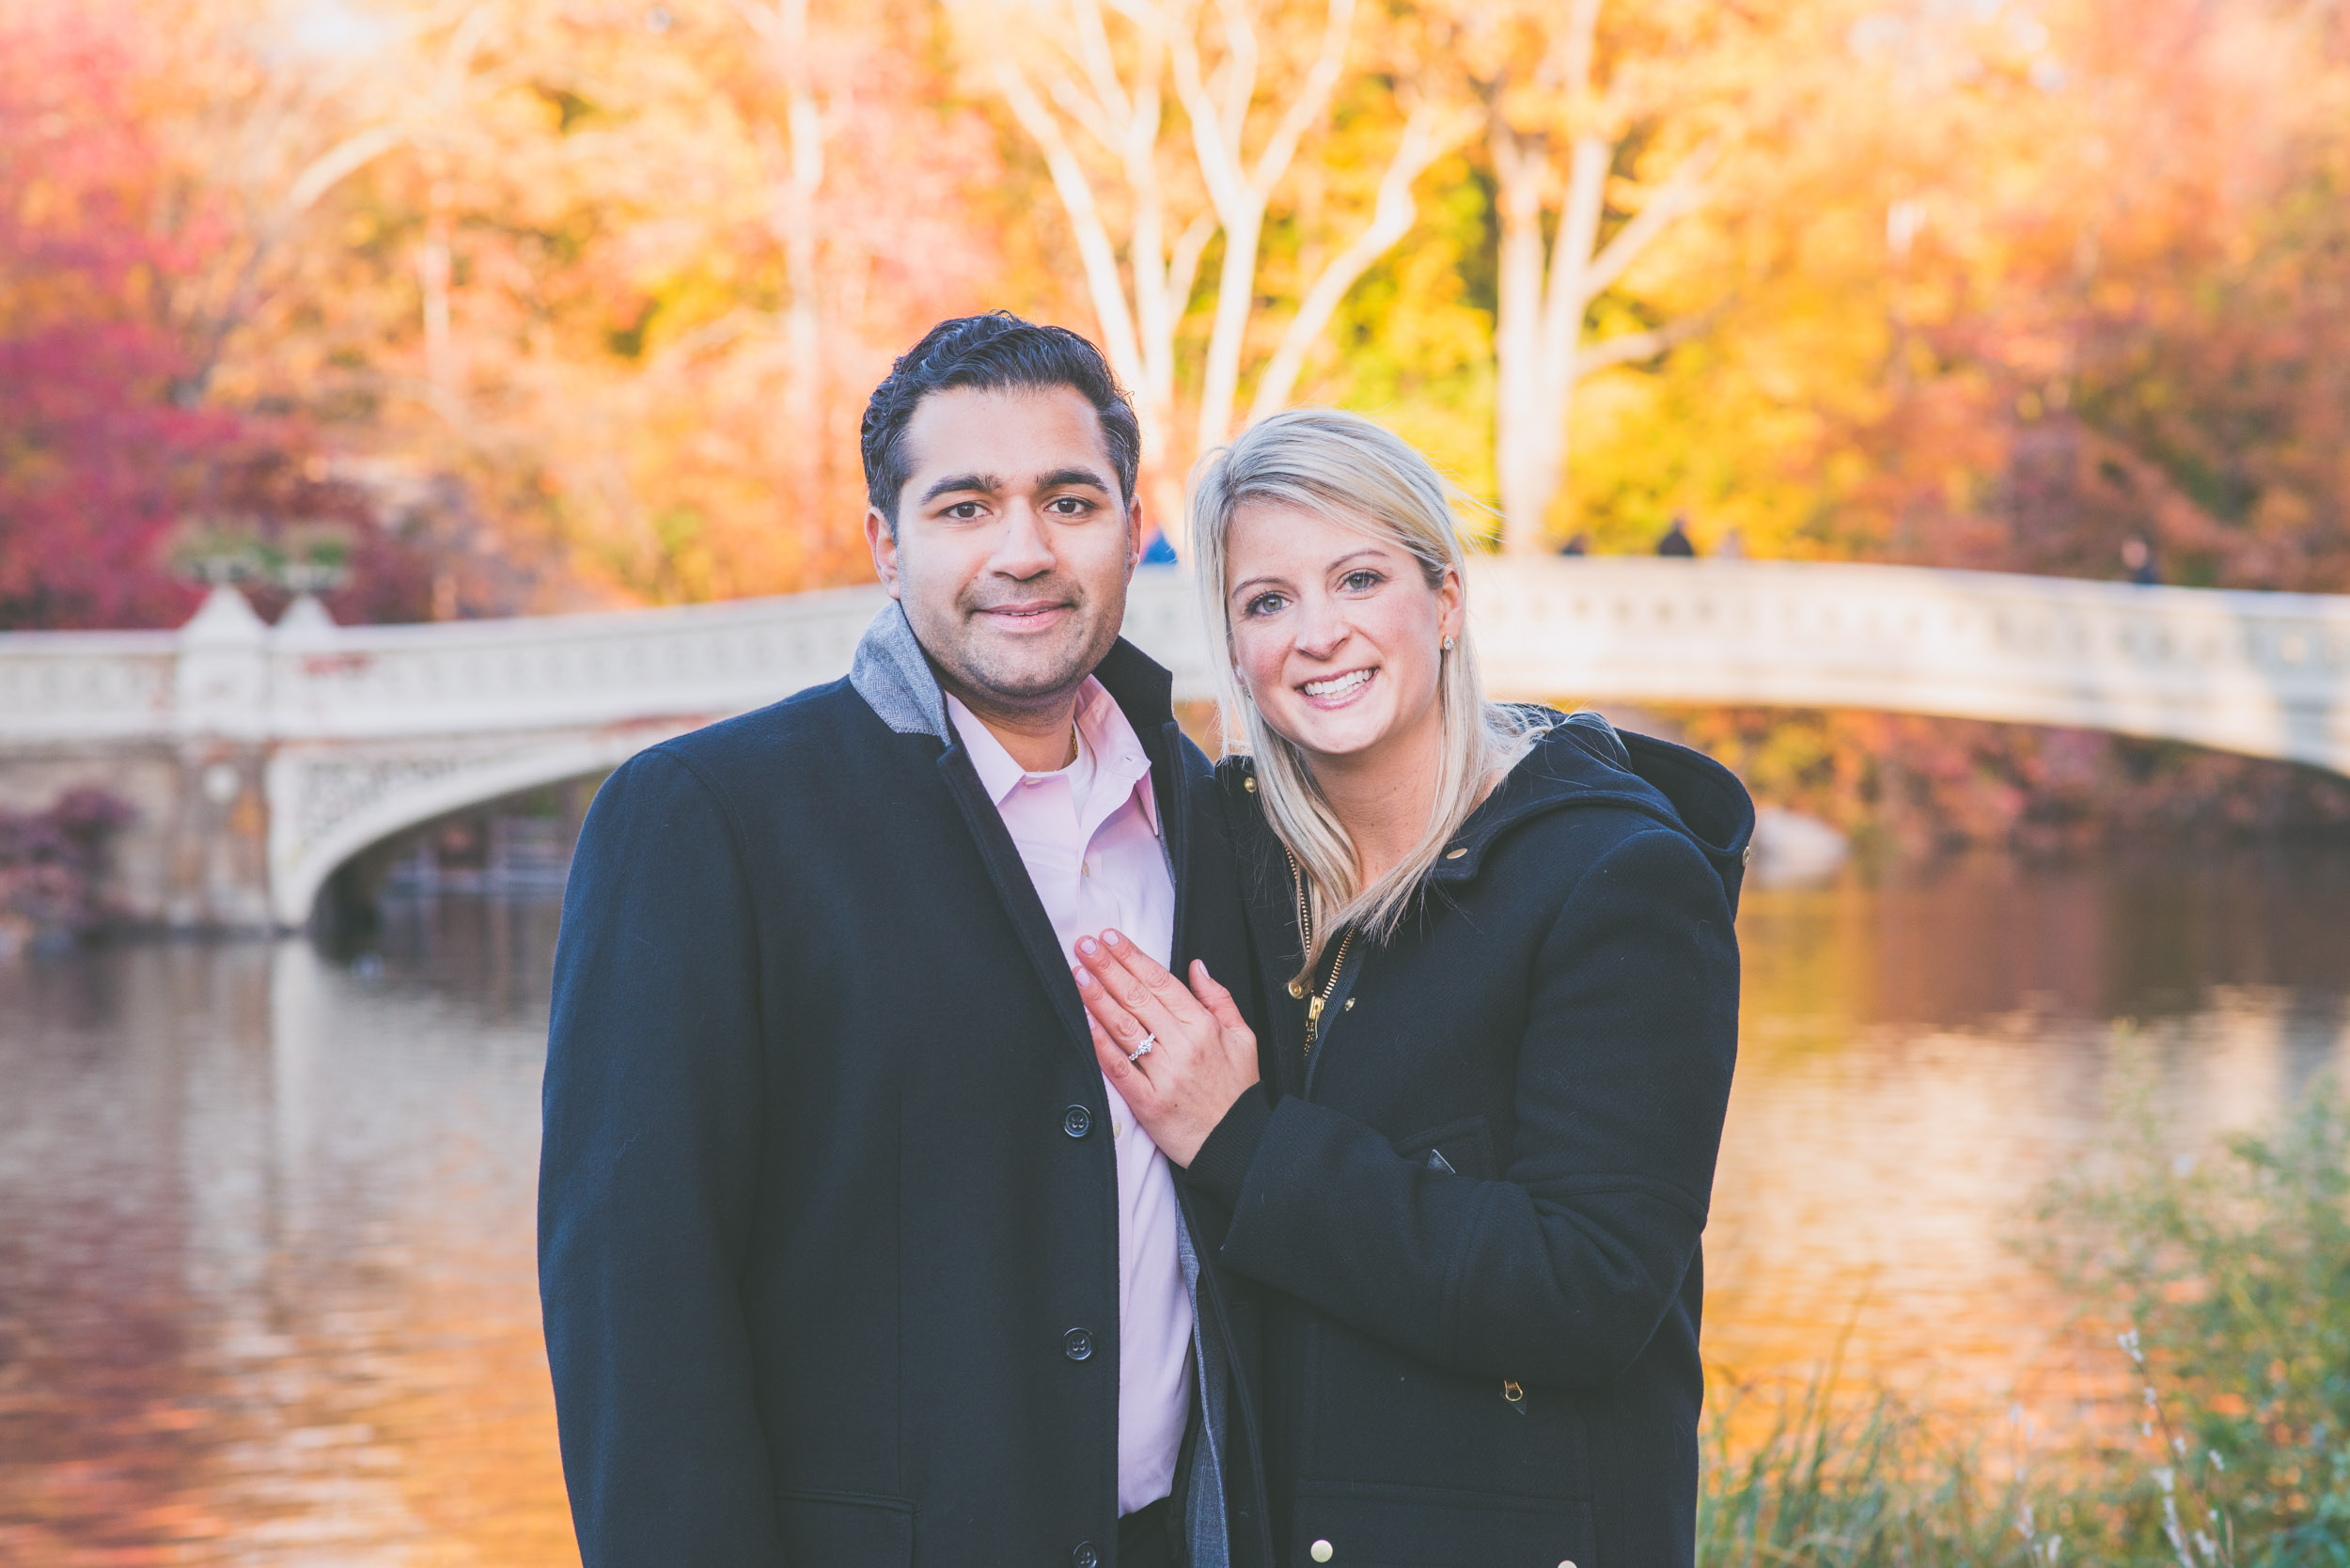 Couple with fall colors - Engagement Portraits - Photo credit Nicola Bailey.jpg